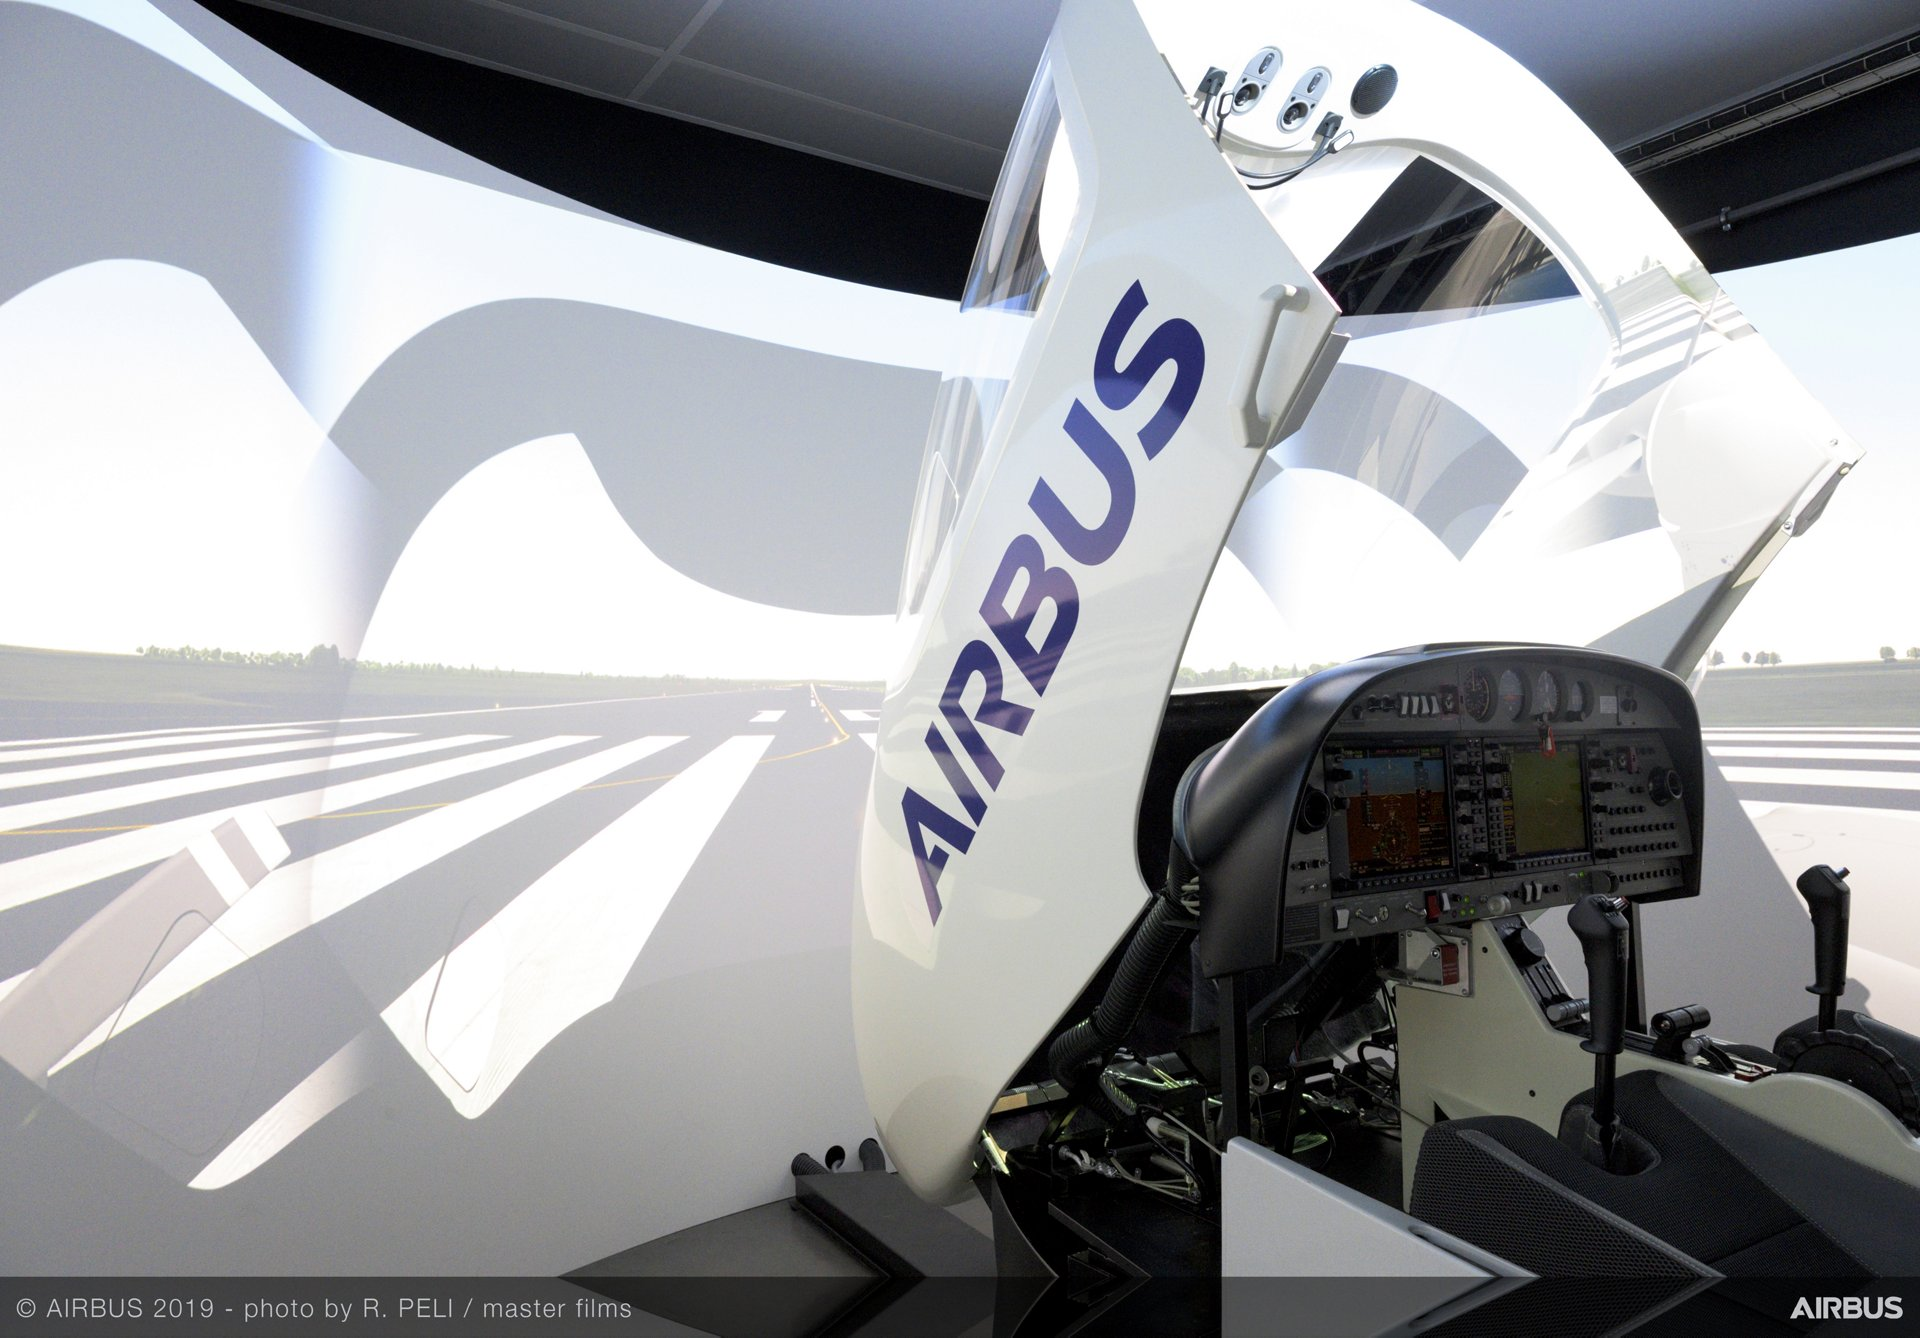 Why choose Airbus?